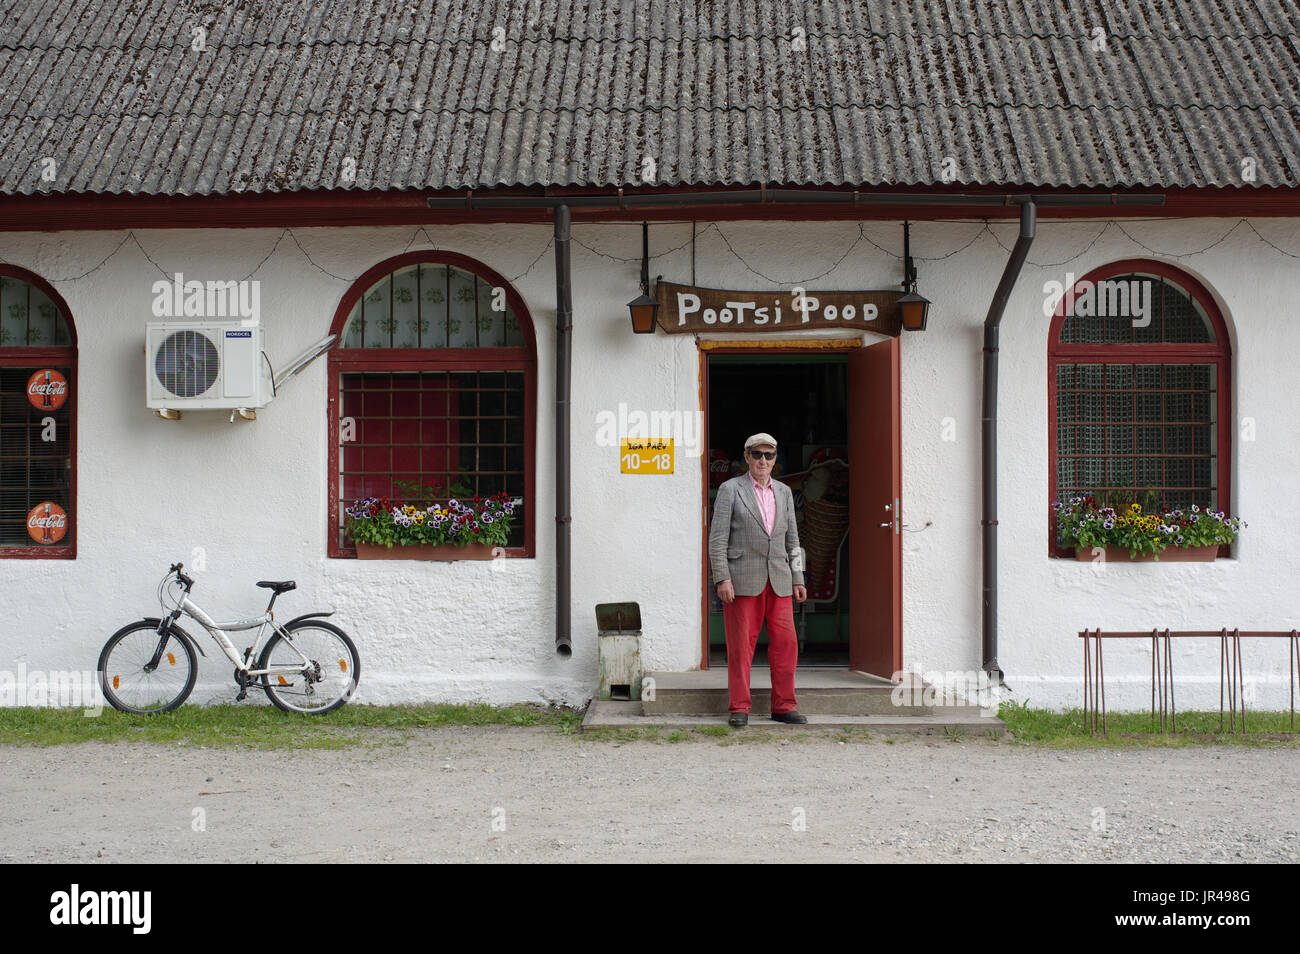 A man is standing in front of the store Pootsi. Pärnu county, Estonia, 2017 - Stock Image